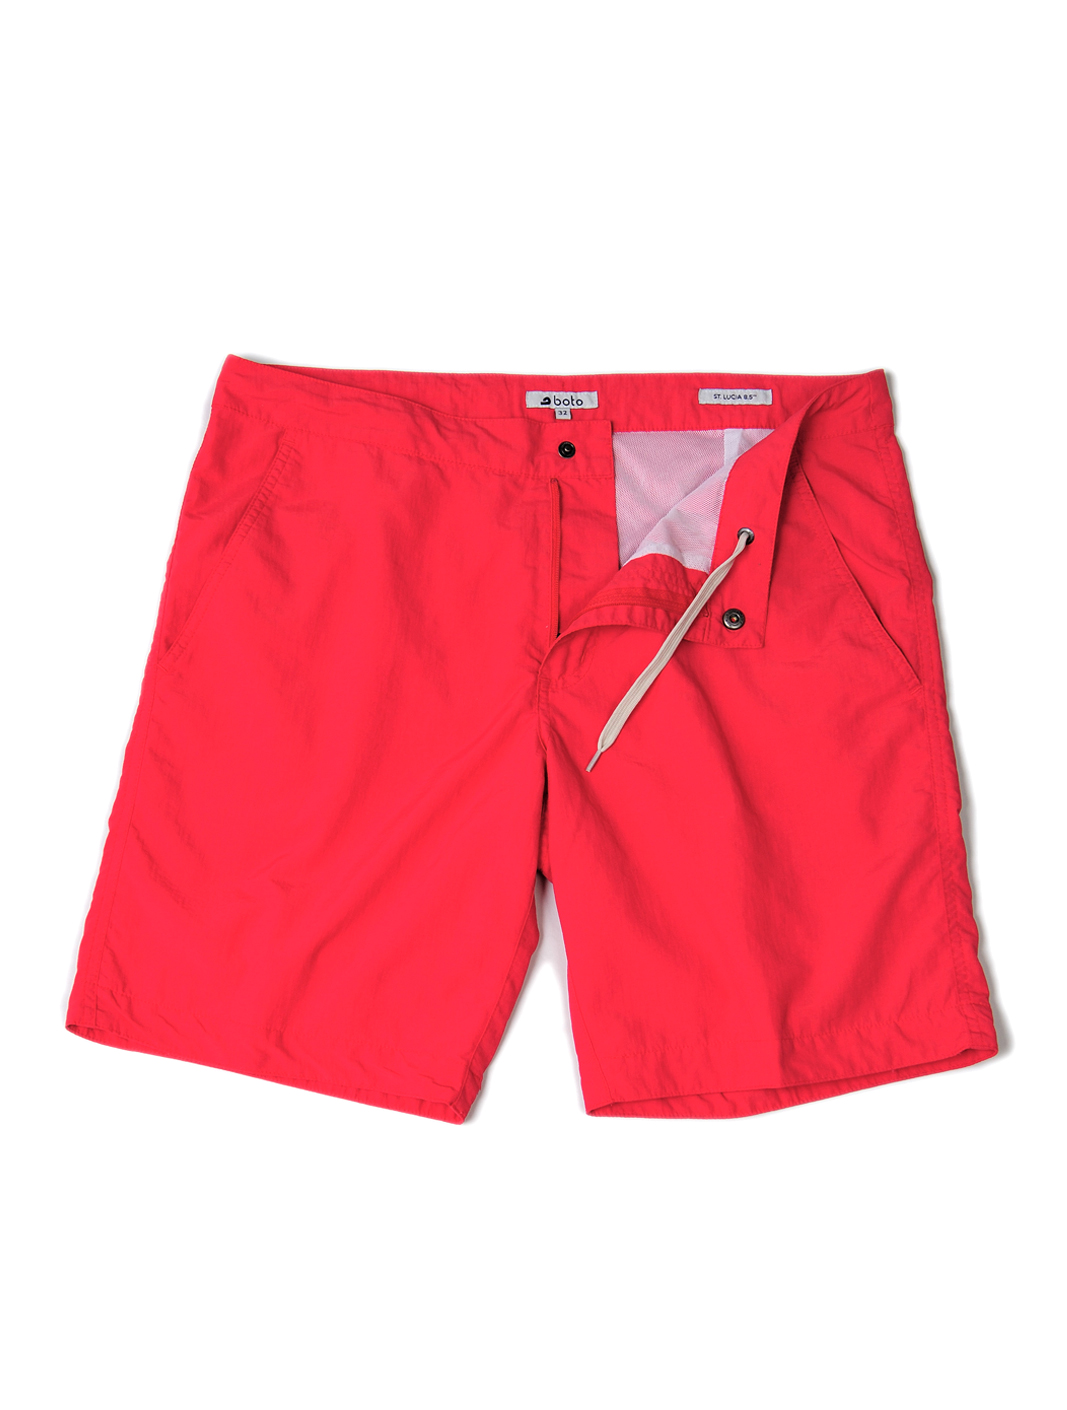 Coral Red Boto Swim Shorts